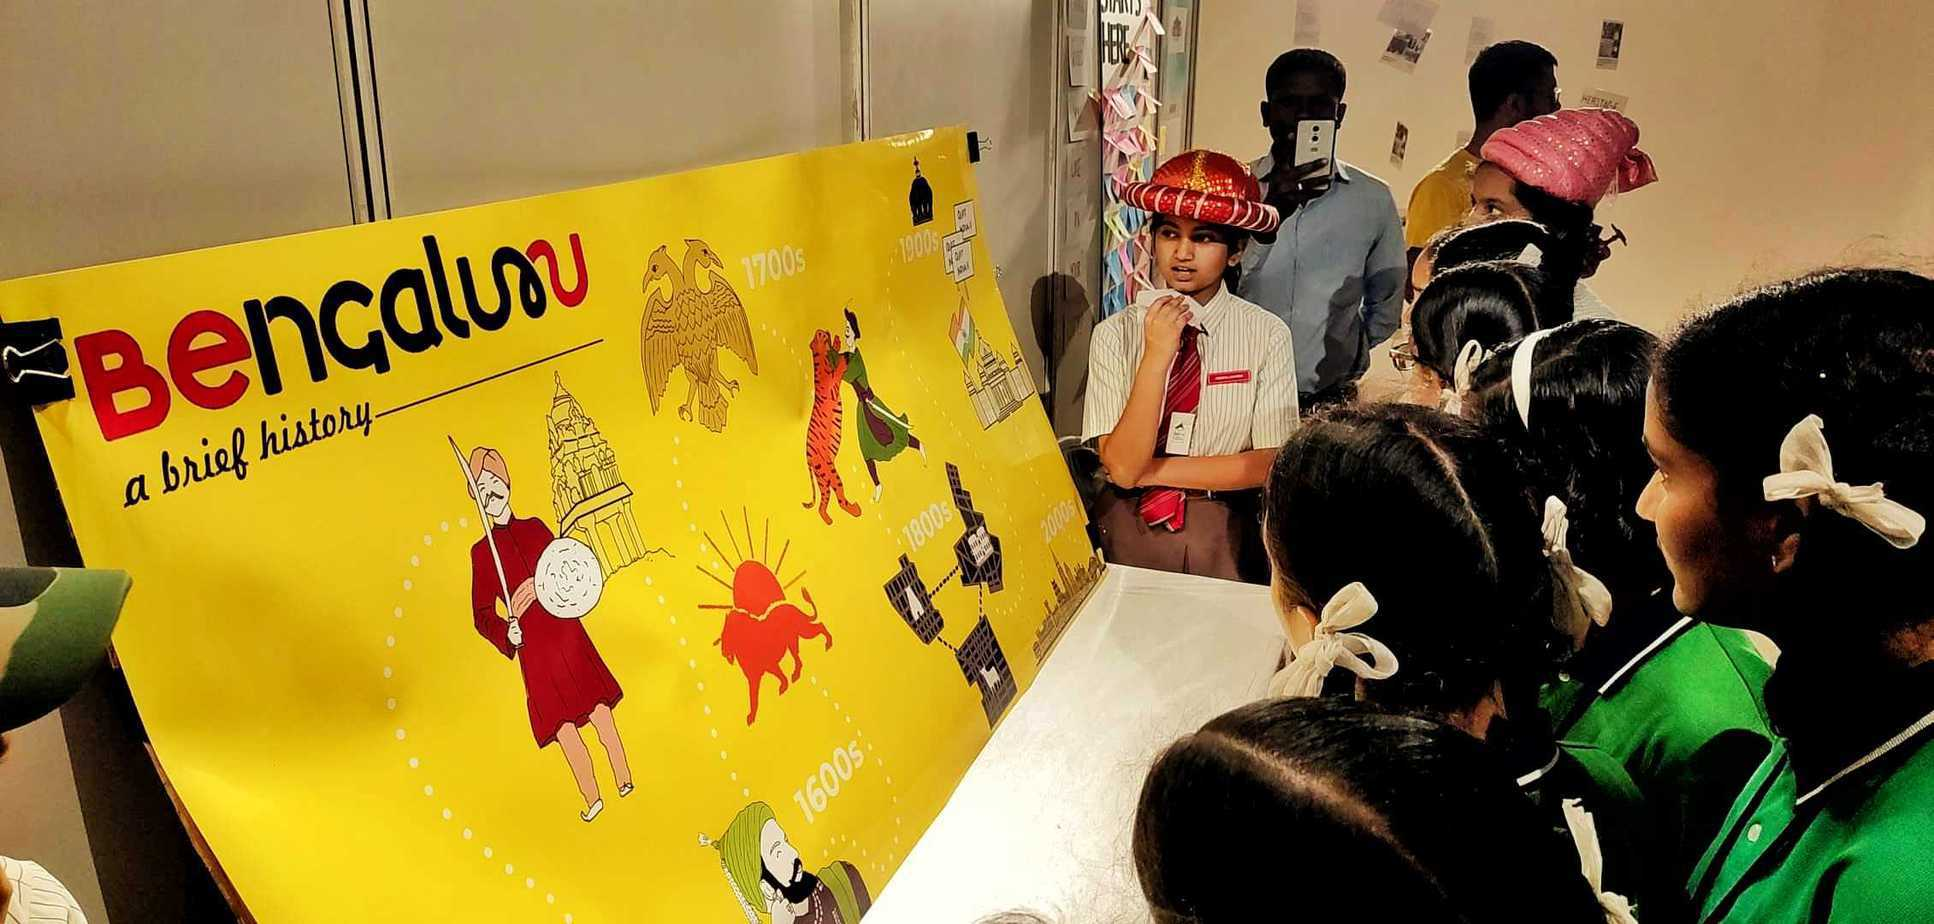 A special stall was set up by Heritage Beku where students had the opportunity to better understand their city's history and heritage. Pic: Ekta Sawant